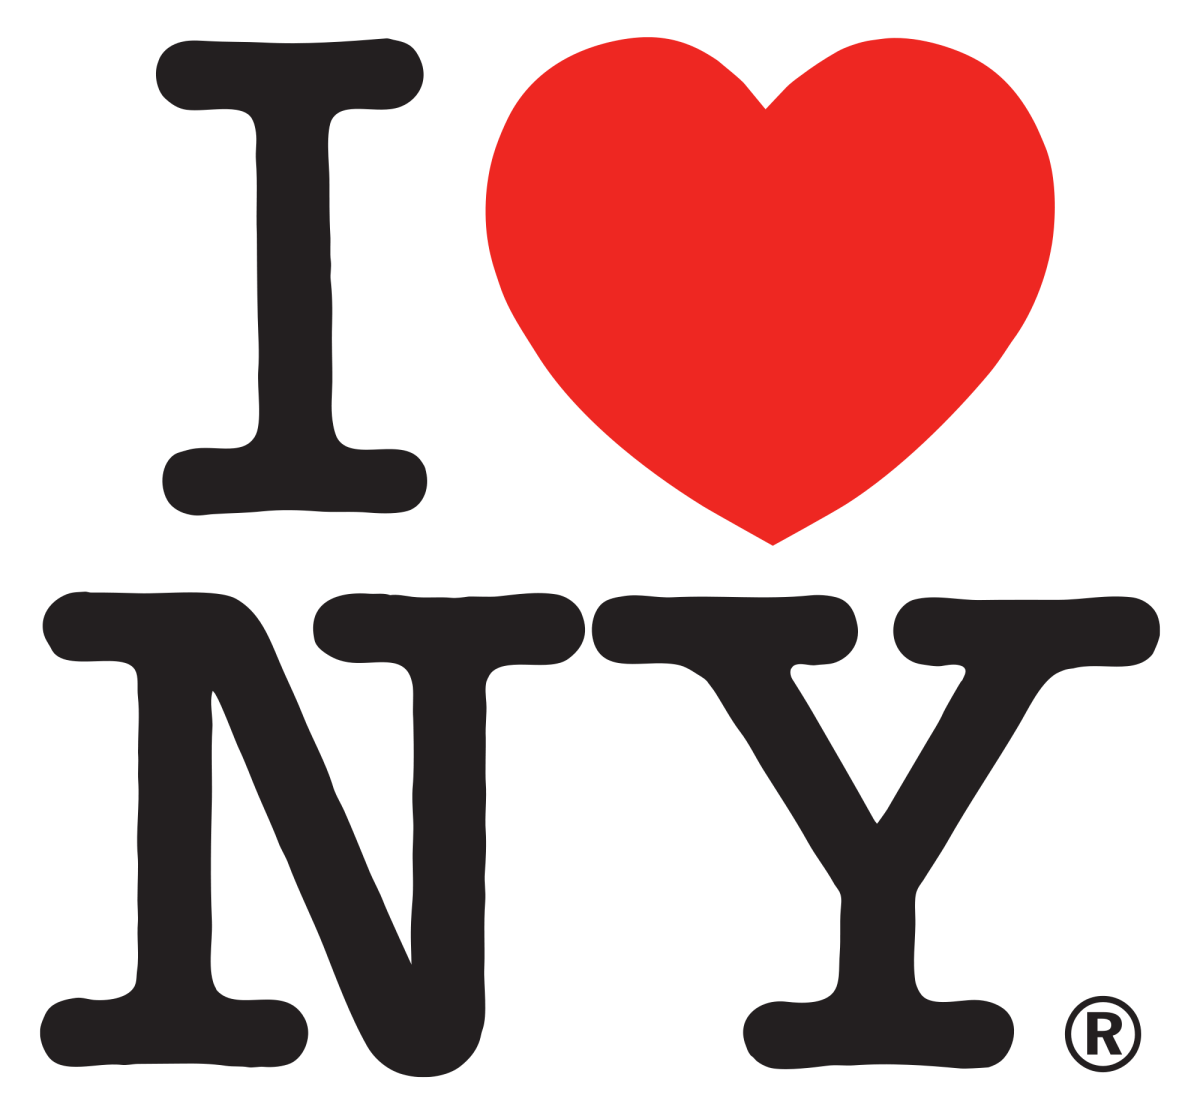 The creator of the I Love New York logo graduated from Cooper Union